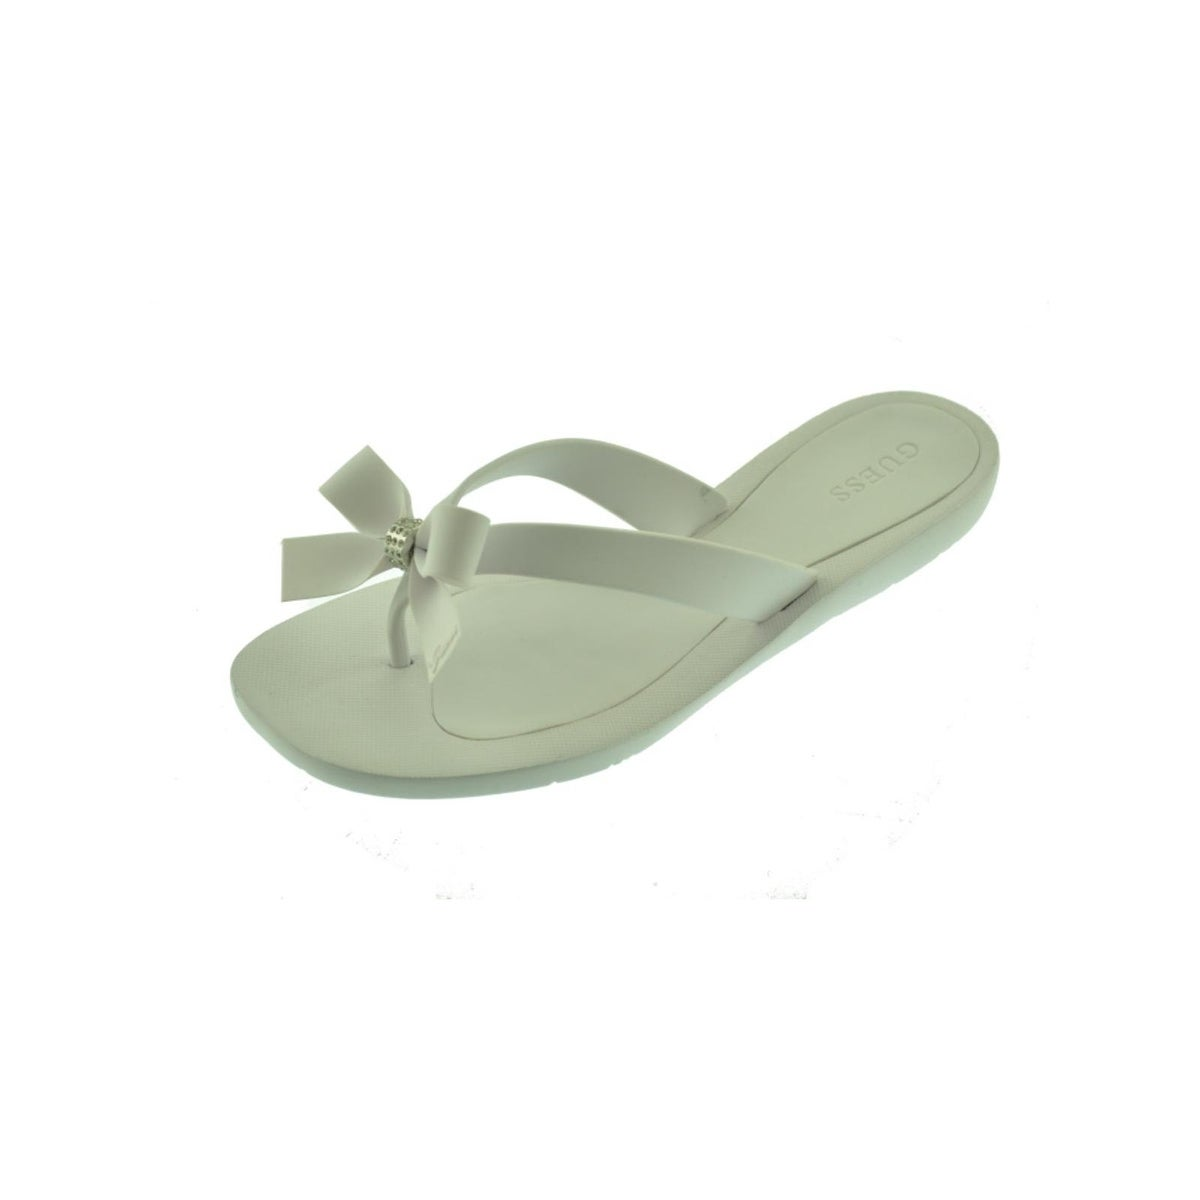 861117dbff7f74 Buy Guess Women s Sandals Online at Overstock